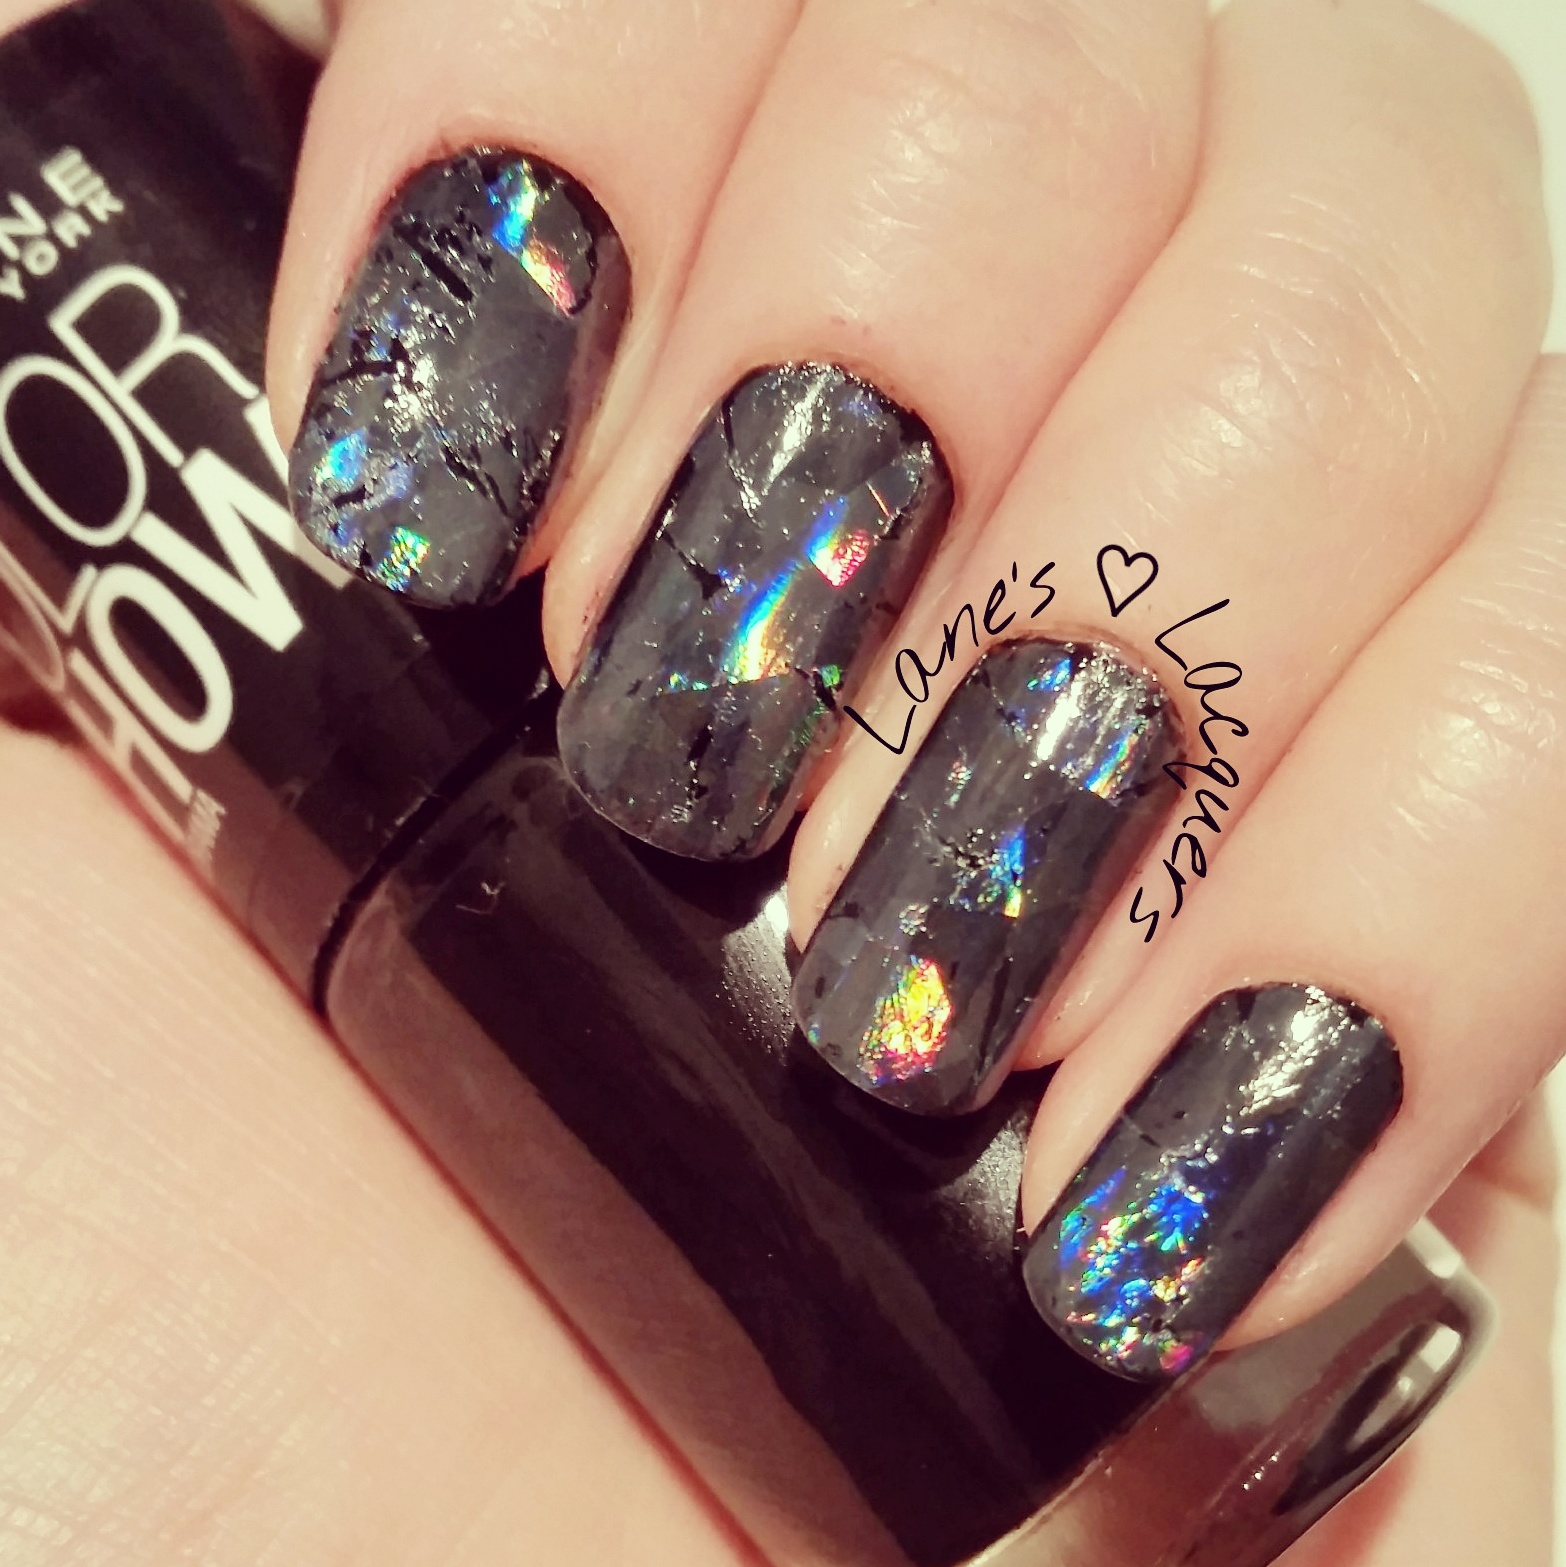 Nail art 2 naples fl images nail art and nail design ideas broken glass nail art image collections nail art and nail design lanes lacquers monday manicure shattered prinsesfo Image collections